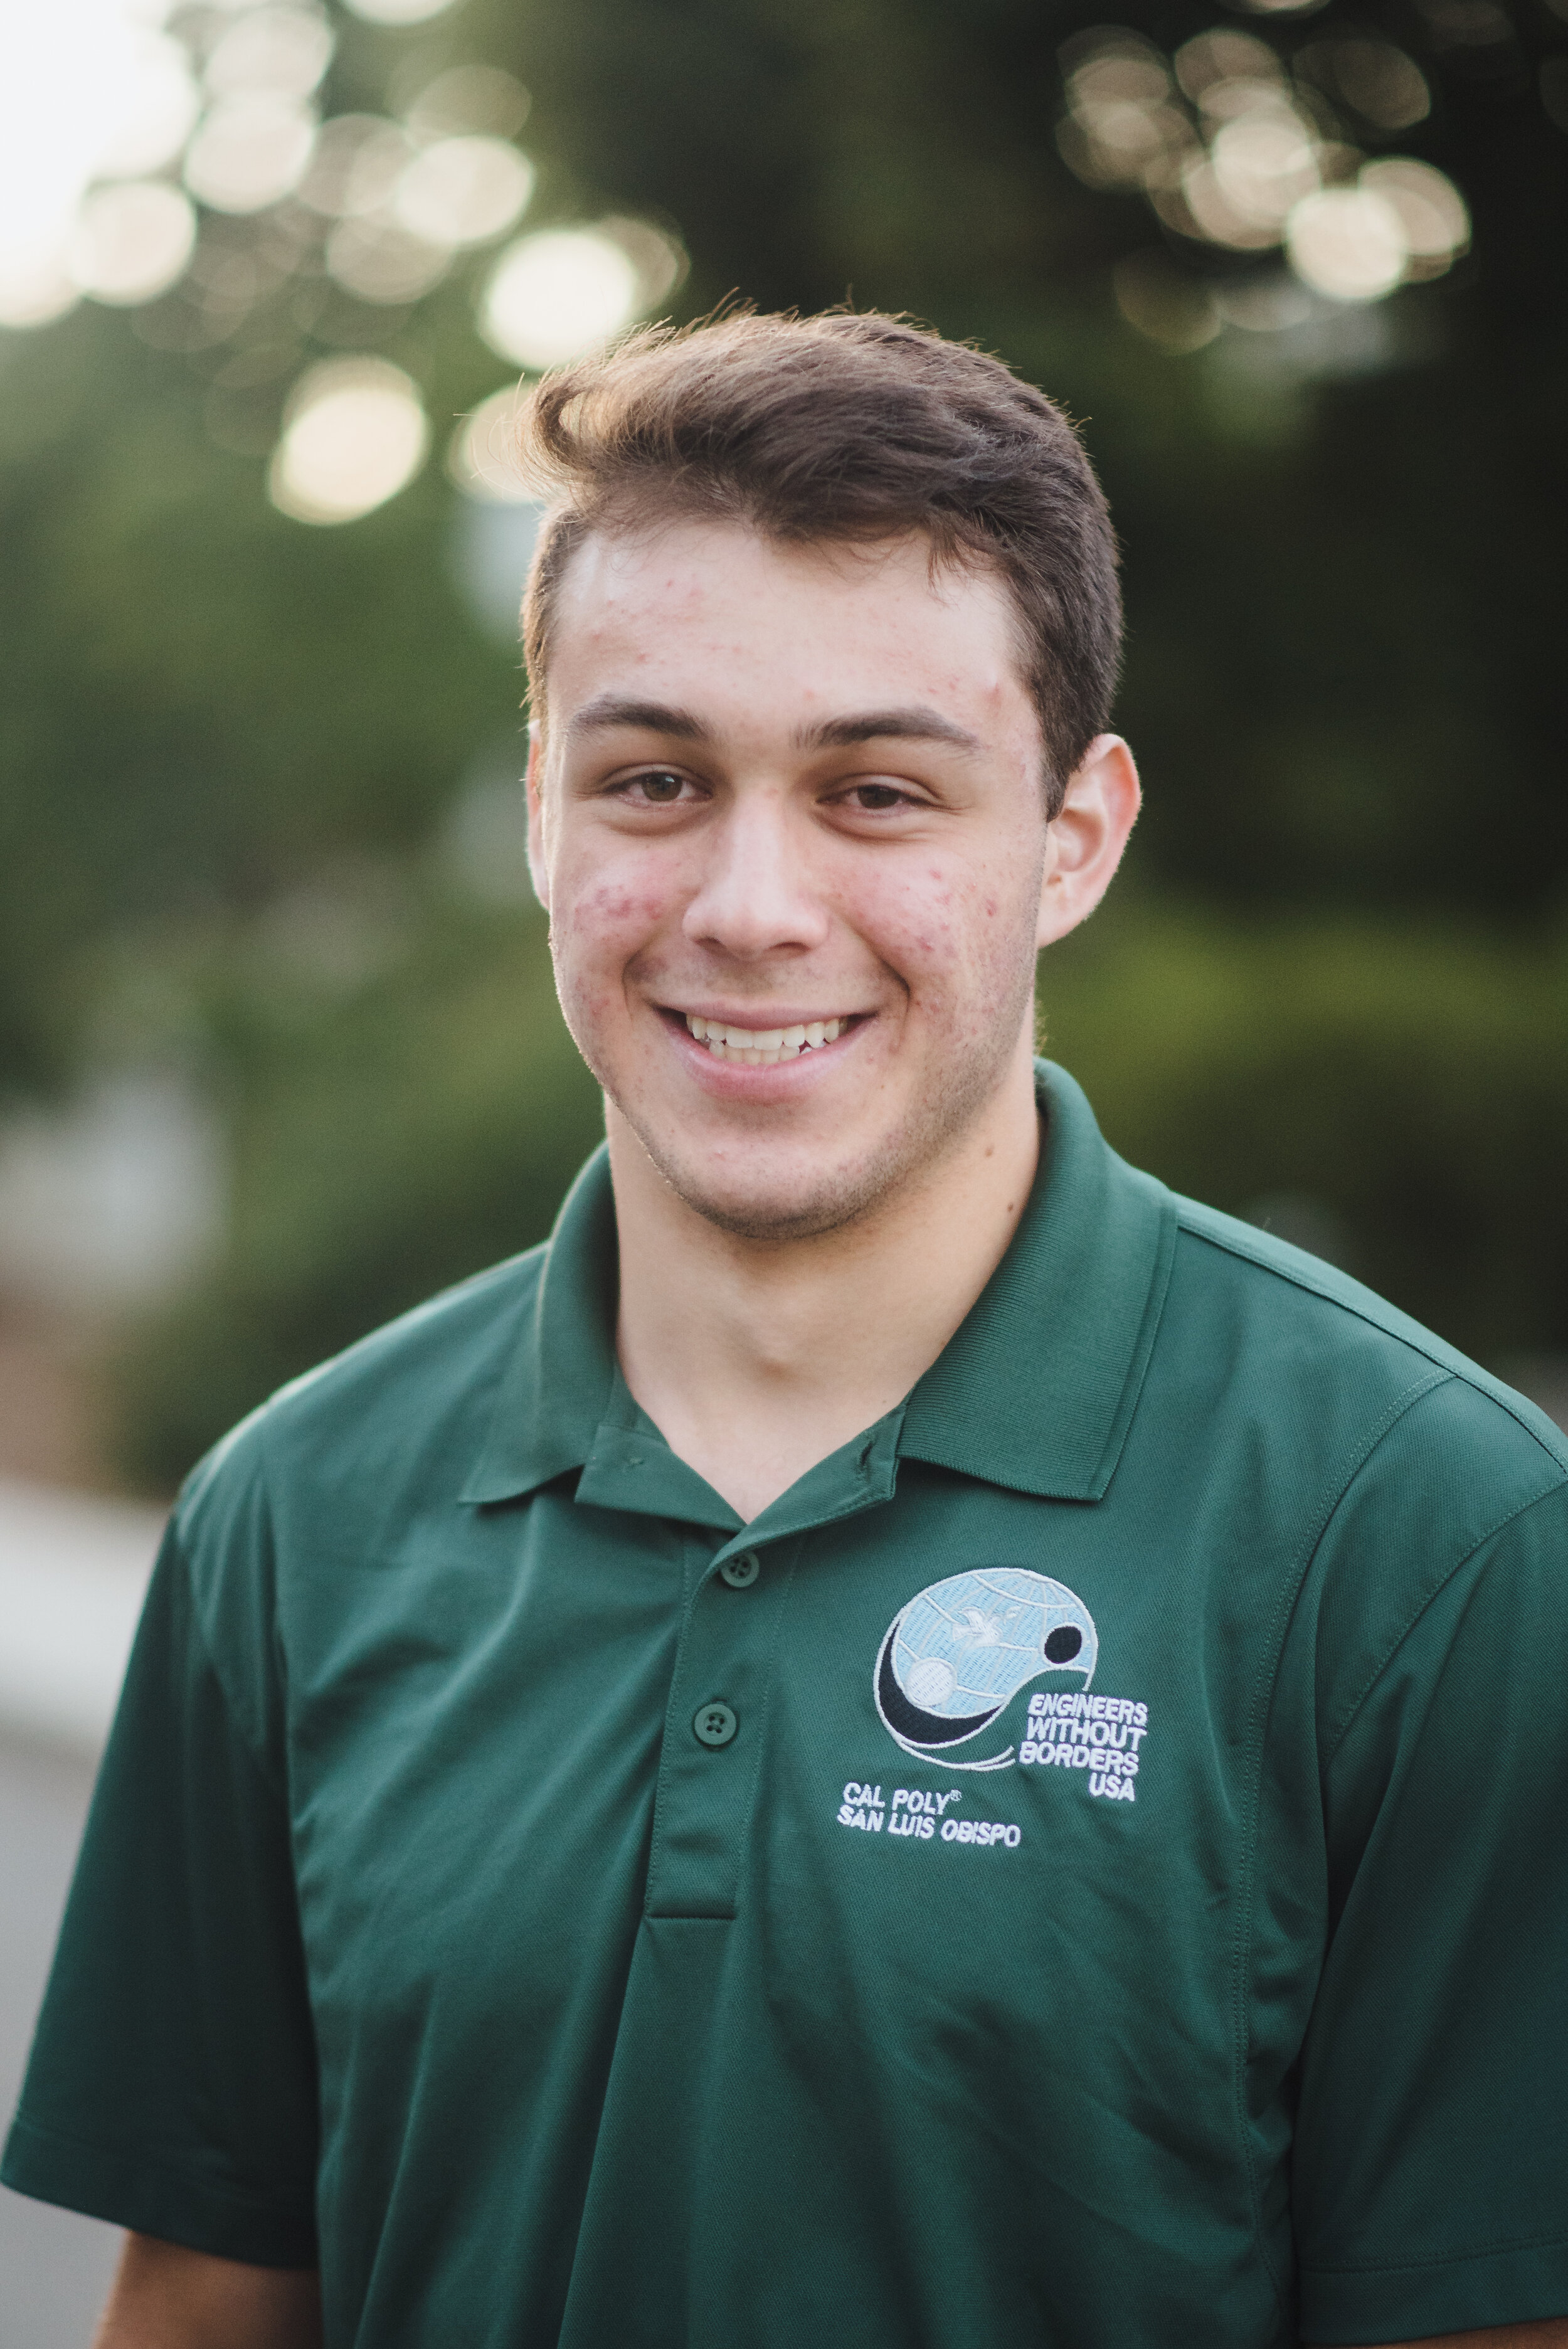 Chris Grabow - Fundraising Lead    Grad 2021 - Civil Engineering   Chris is a third year Civil Engineering Major from Los Angeles, CA. He joined EWB to acquire real-world engineering experience while helping developing international communities. Chris's favorite EWB memory is of all the camping trips and bonfires he has attended over the past couple years. Outside of EWB, he enjoys producing music and playing volleyball.